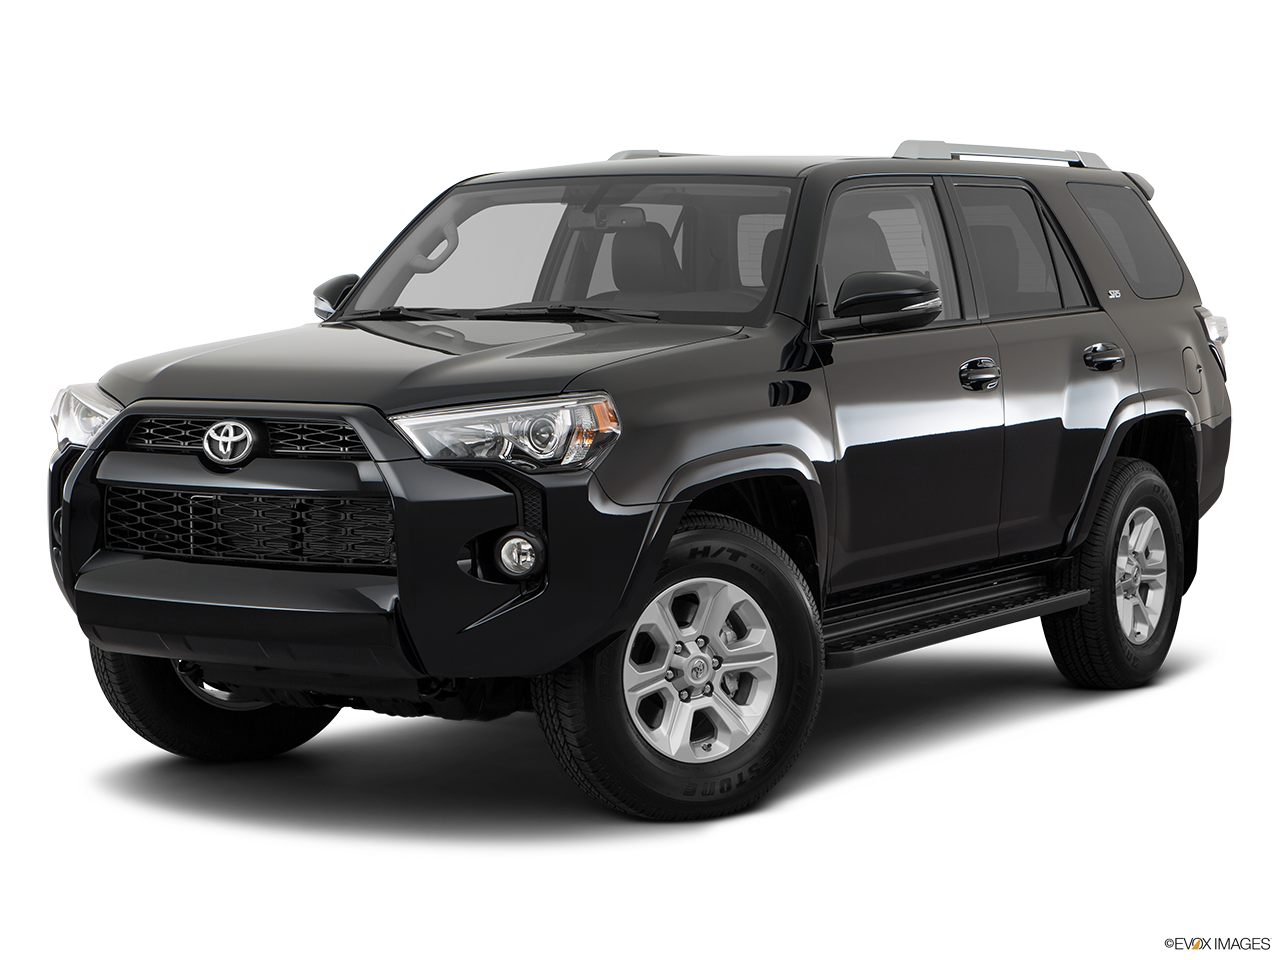 Test Drive A 2017 Toyota 4Runner at Toyota of El Cajon near San Diego